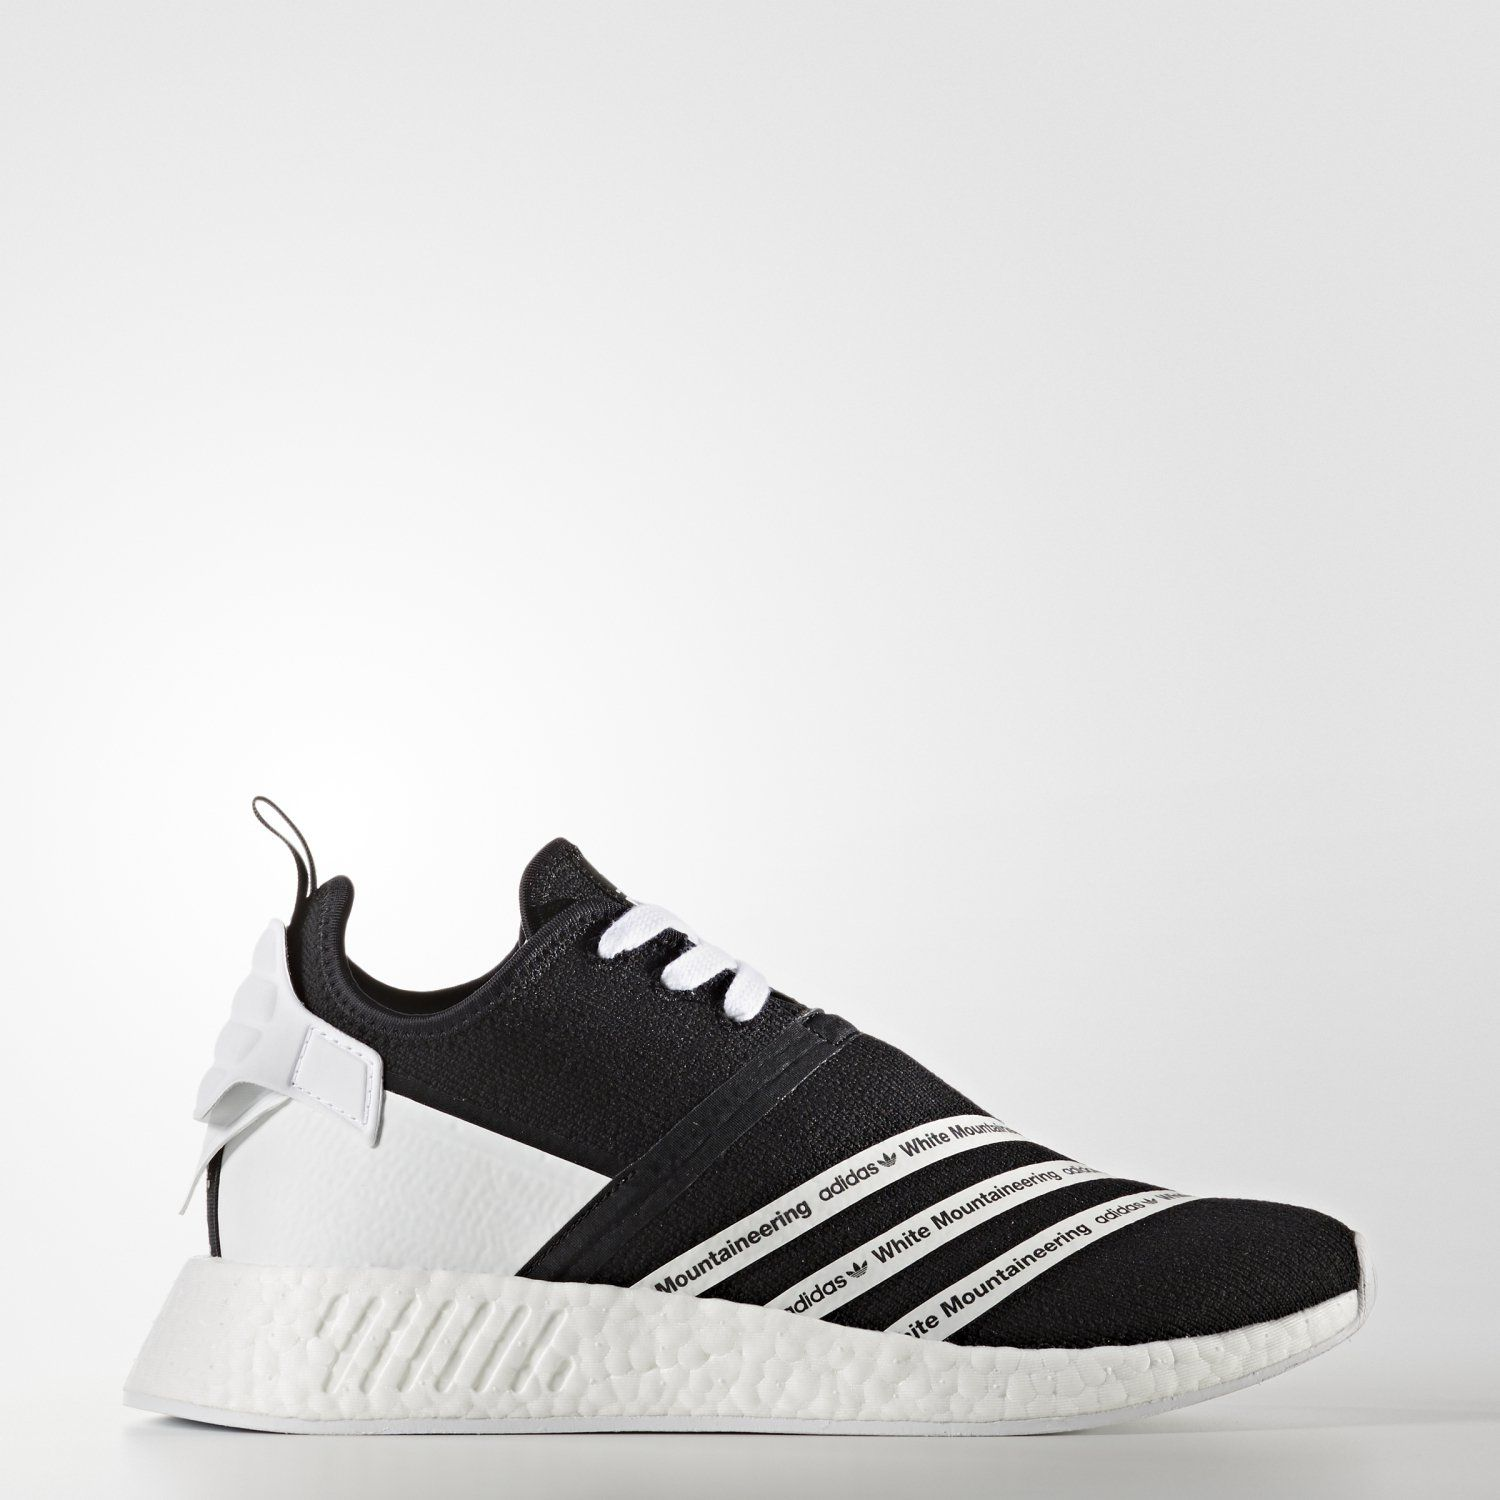 WM NMD Design R2 Offer PK White Mountaineering Black